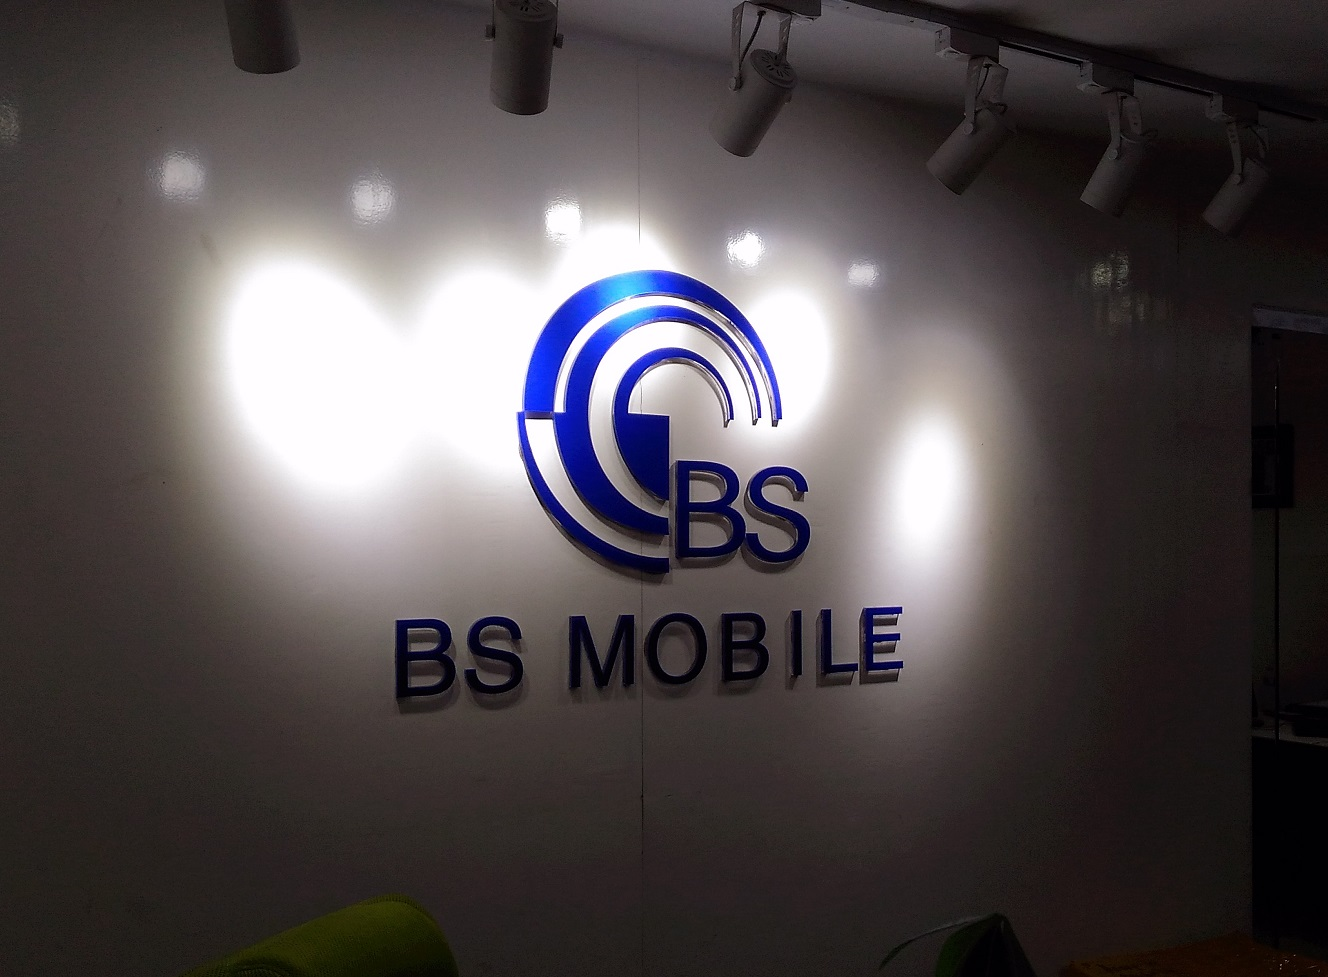 BS Mobile leaks own Php 3k phone with 4G LTE, 5-inch screen, and Android Lollipop